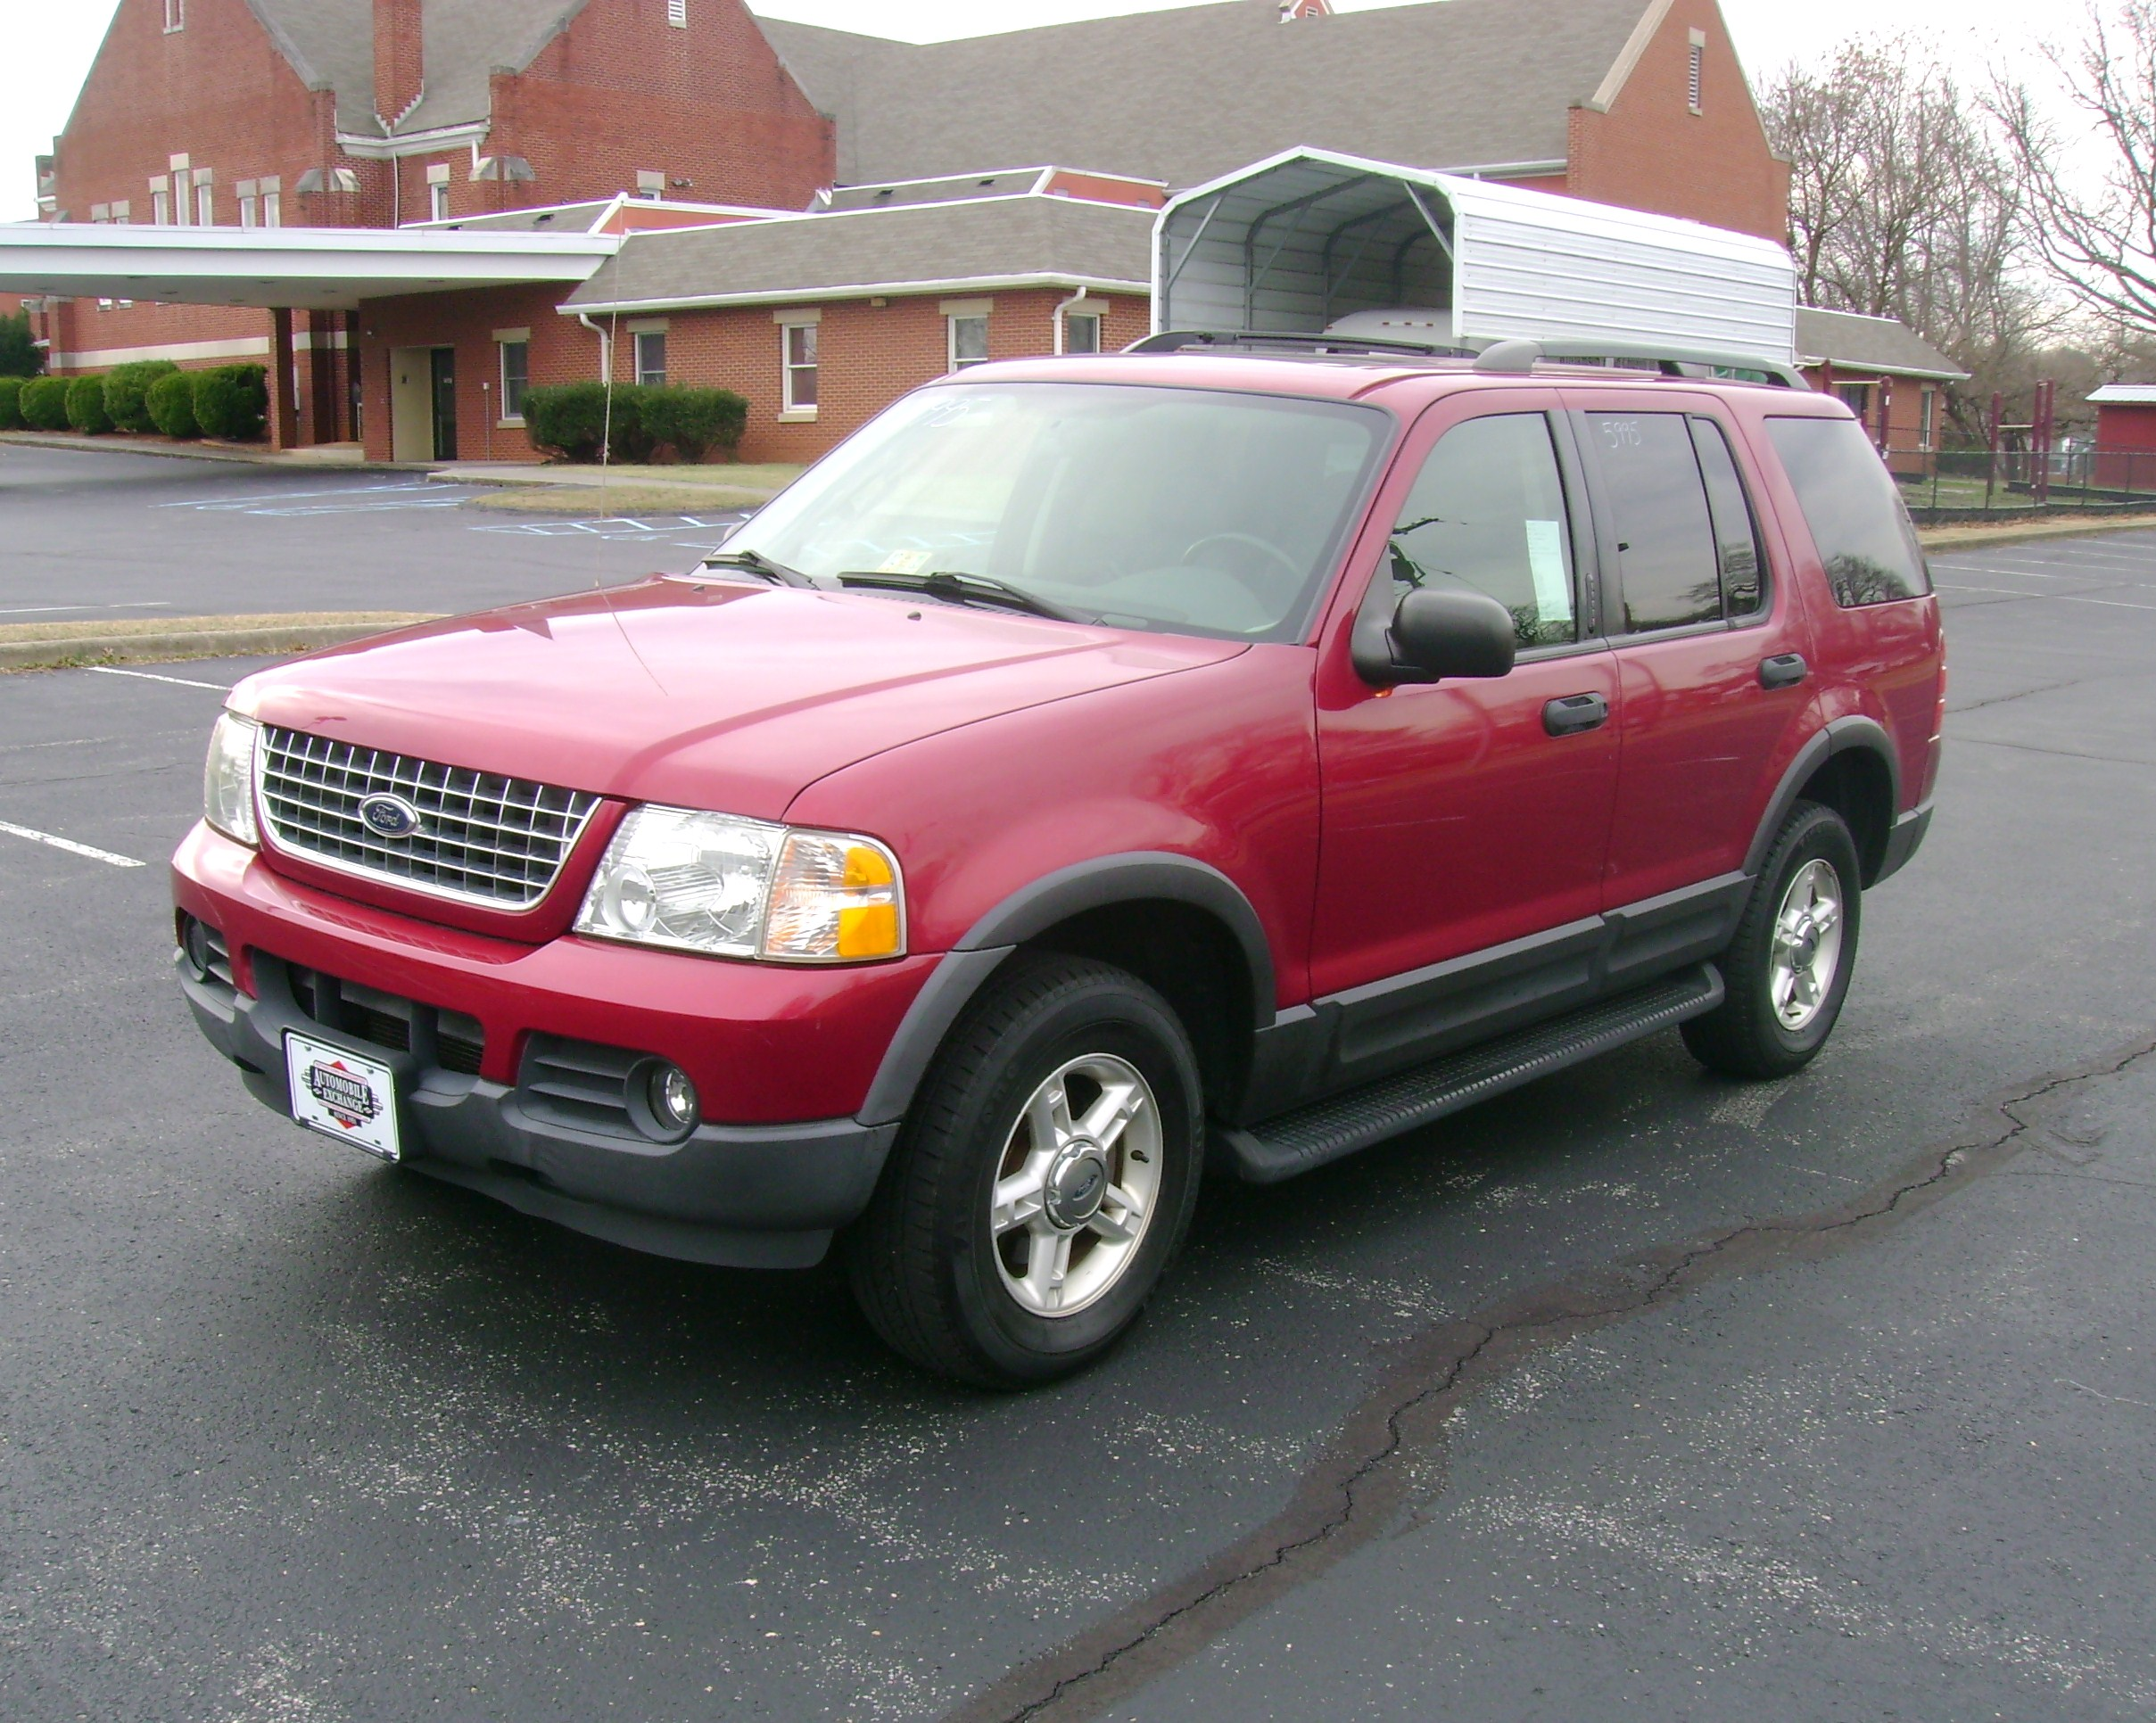 2003 ford explorer xlt 001 2003 ford explorer xlt 001. Cars Review. Best American Auto & Cars Review